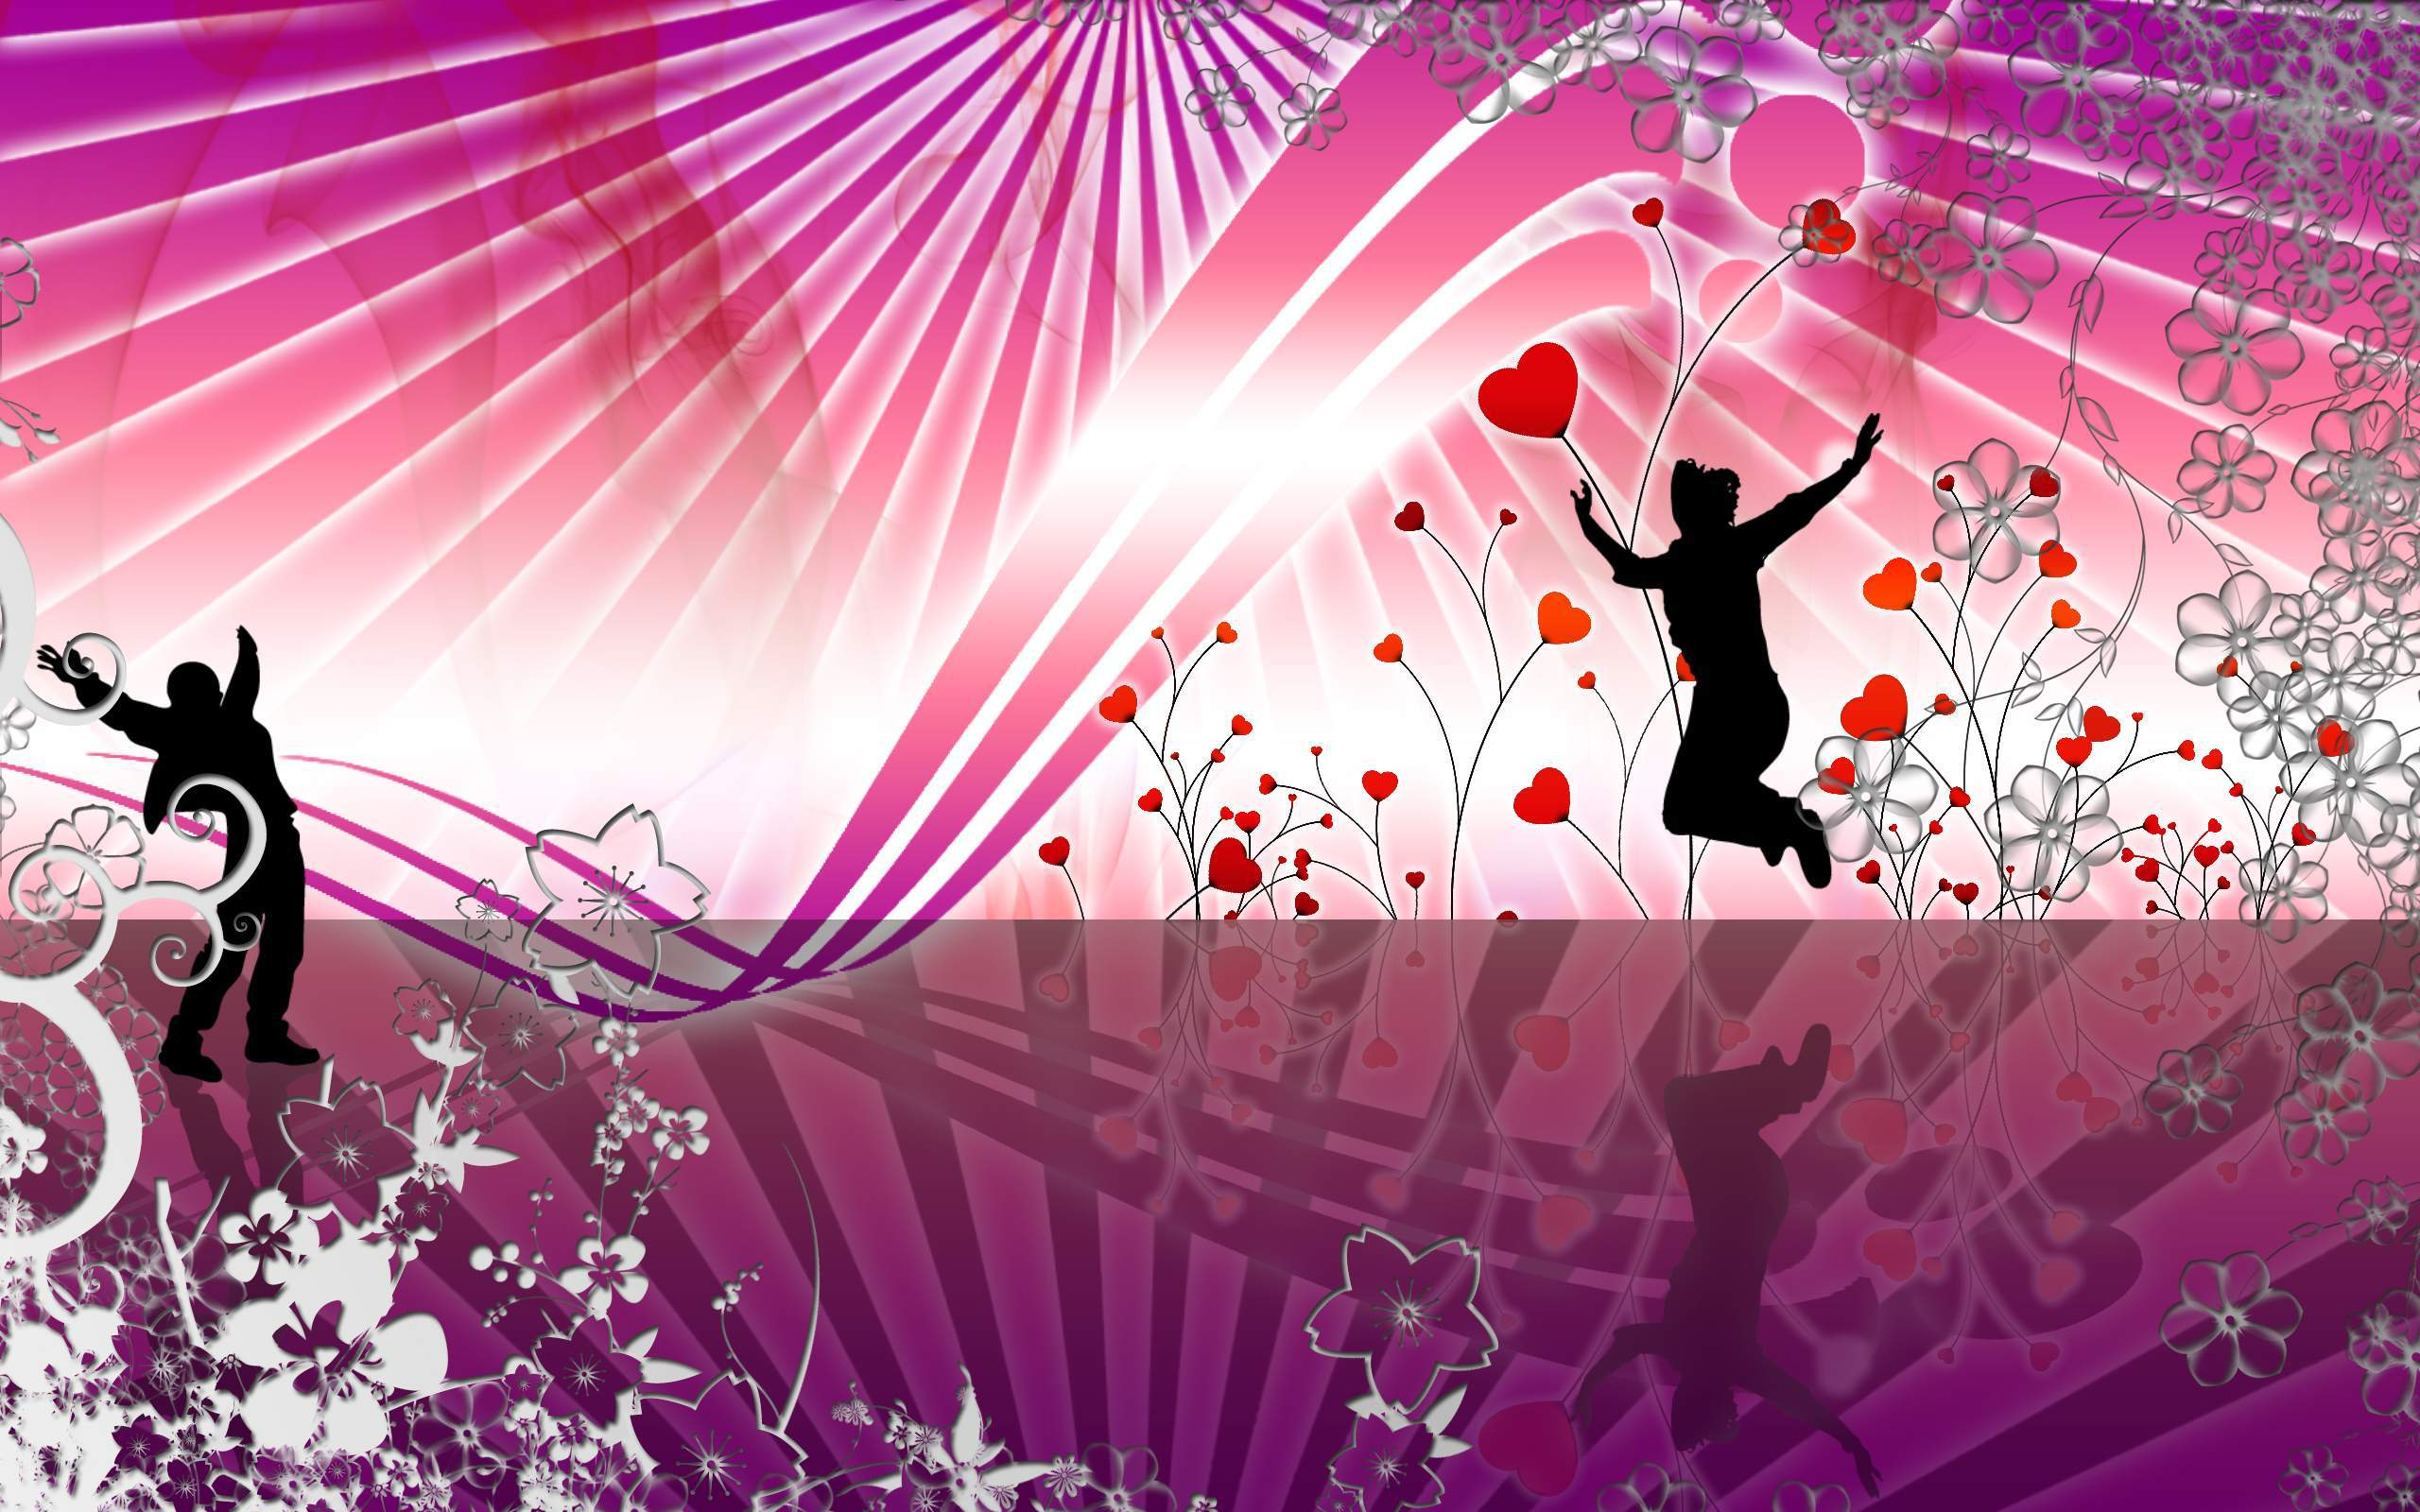 Dancing Couple Ballroom Dancing Background Hd 2560x1600 Wallpaper Teahub Io